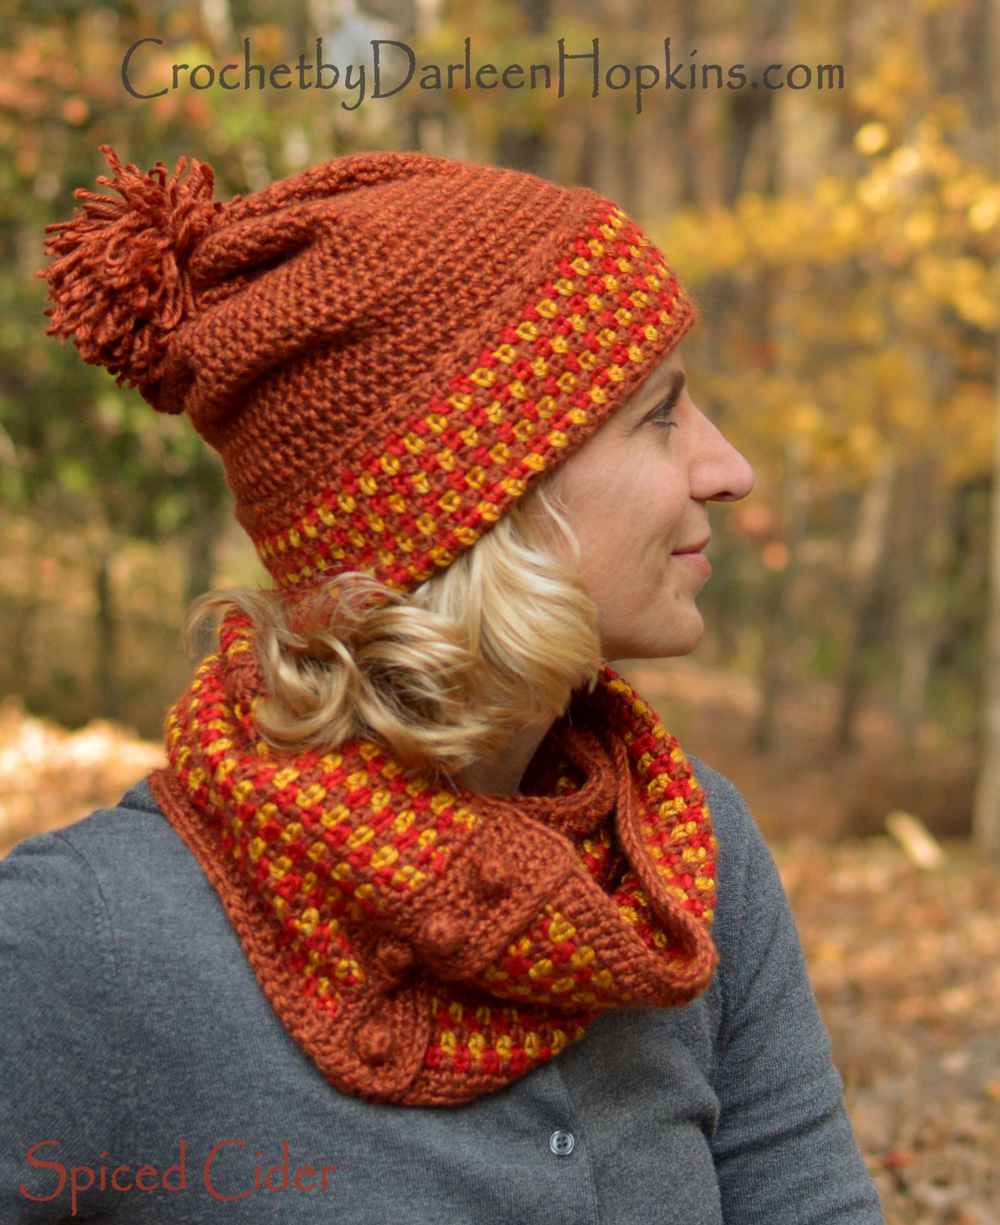 Hat and Cowl-Spiced Cider, pattern set | Crochet By Darleen Hopkins